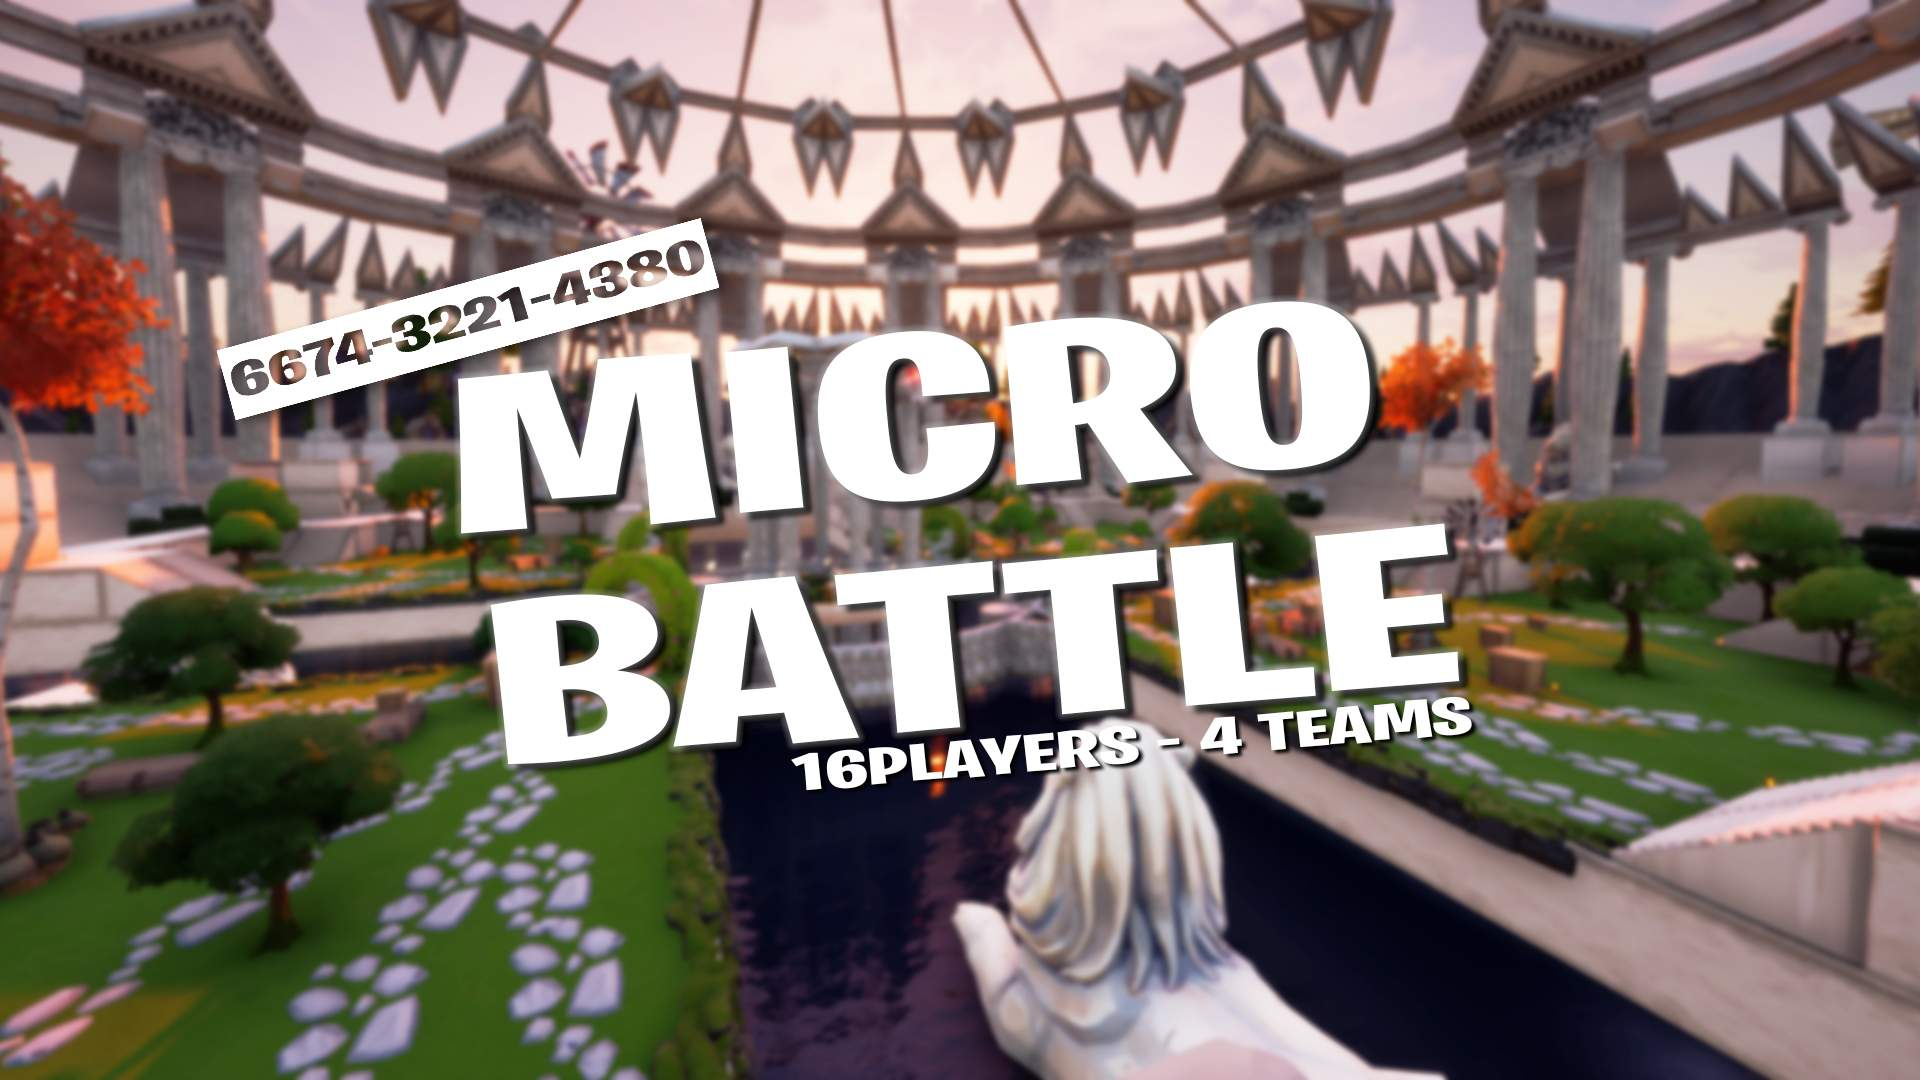 🤏🏻MICRO BATTLE | 16 PLAYERS - 4 TEAMS